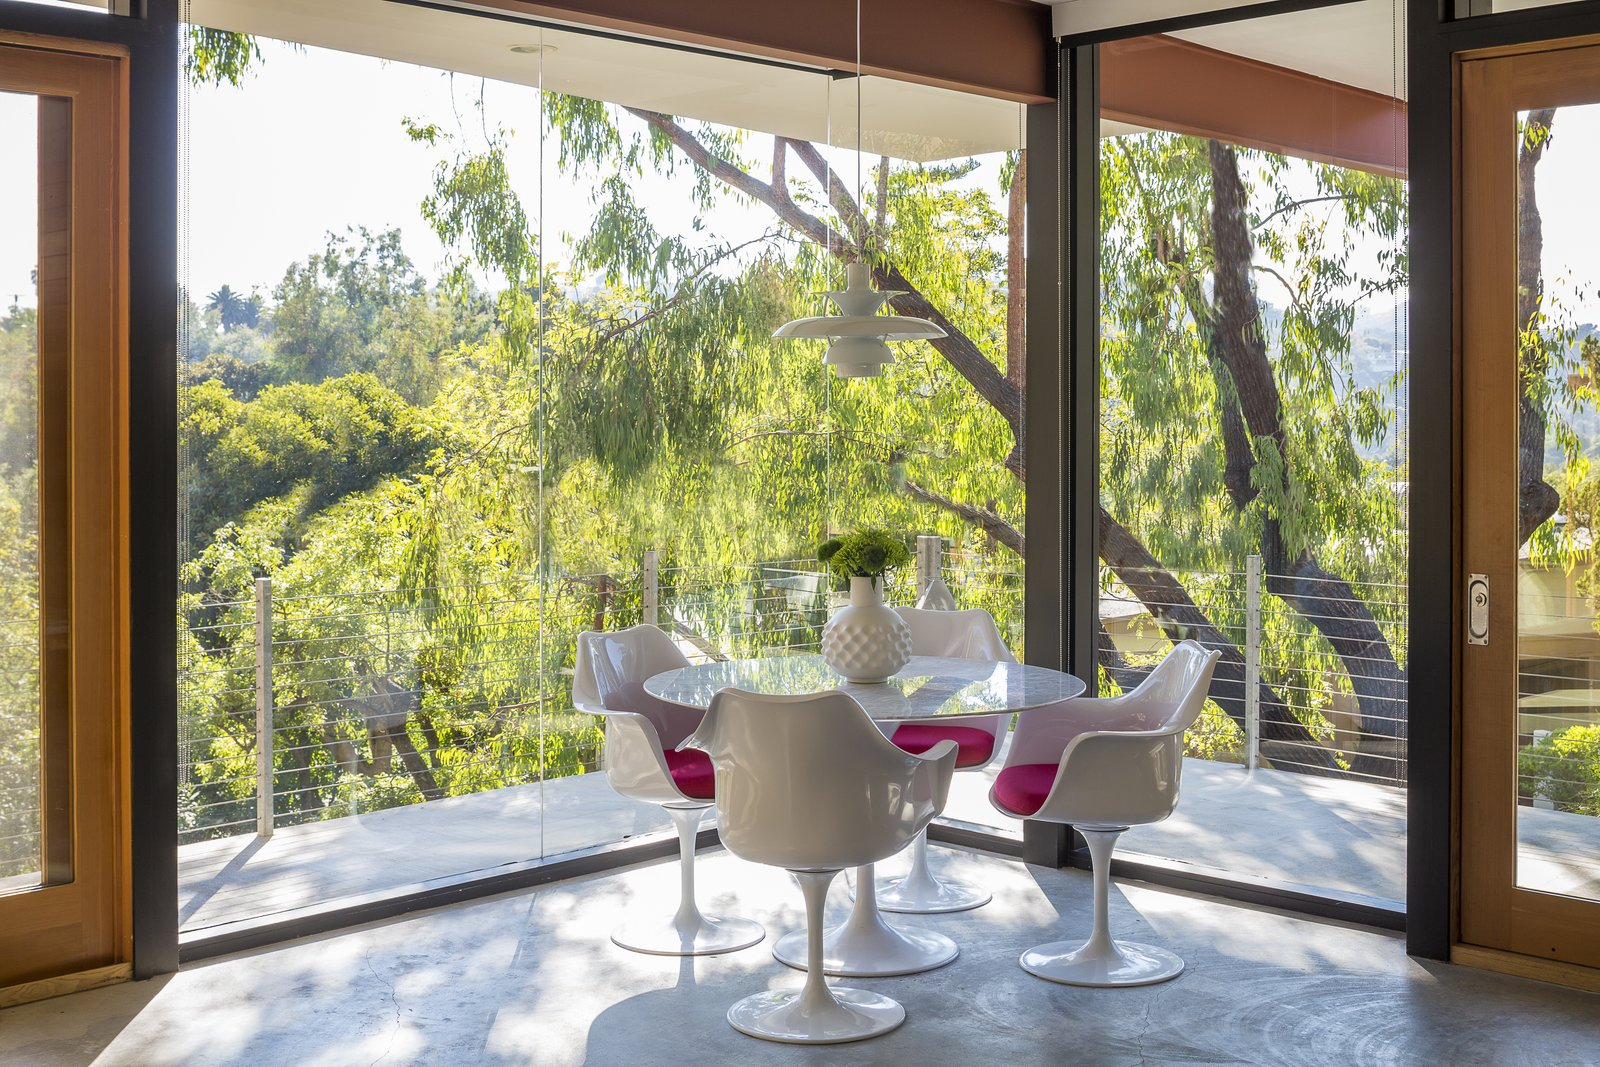 Sycamore House by ANX / Aaron Neubert Architects